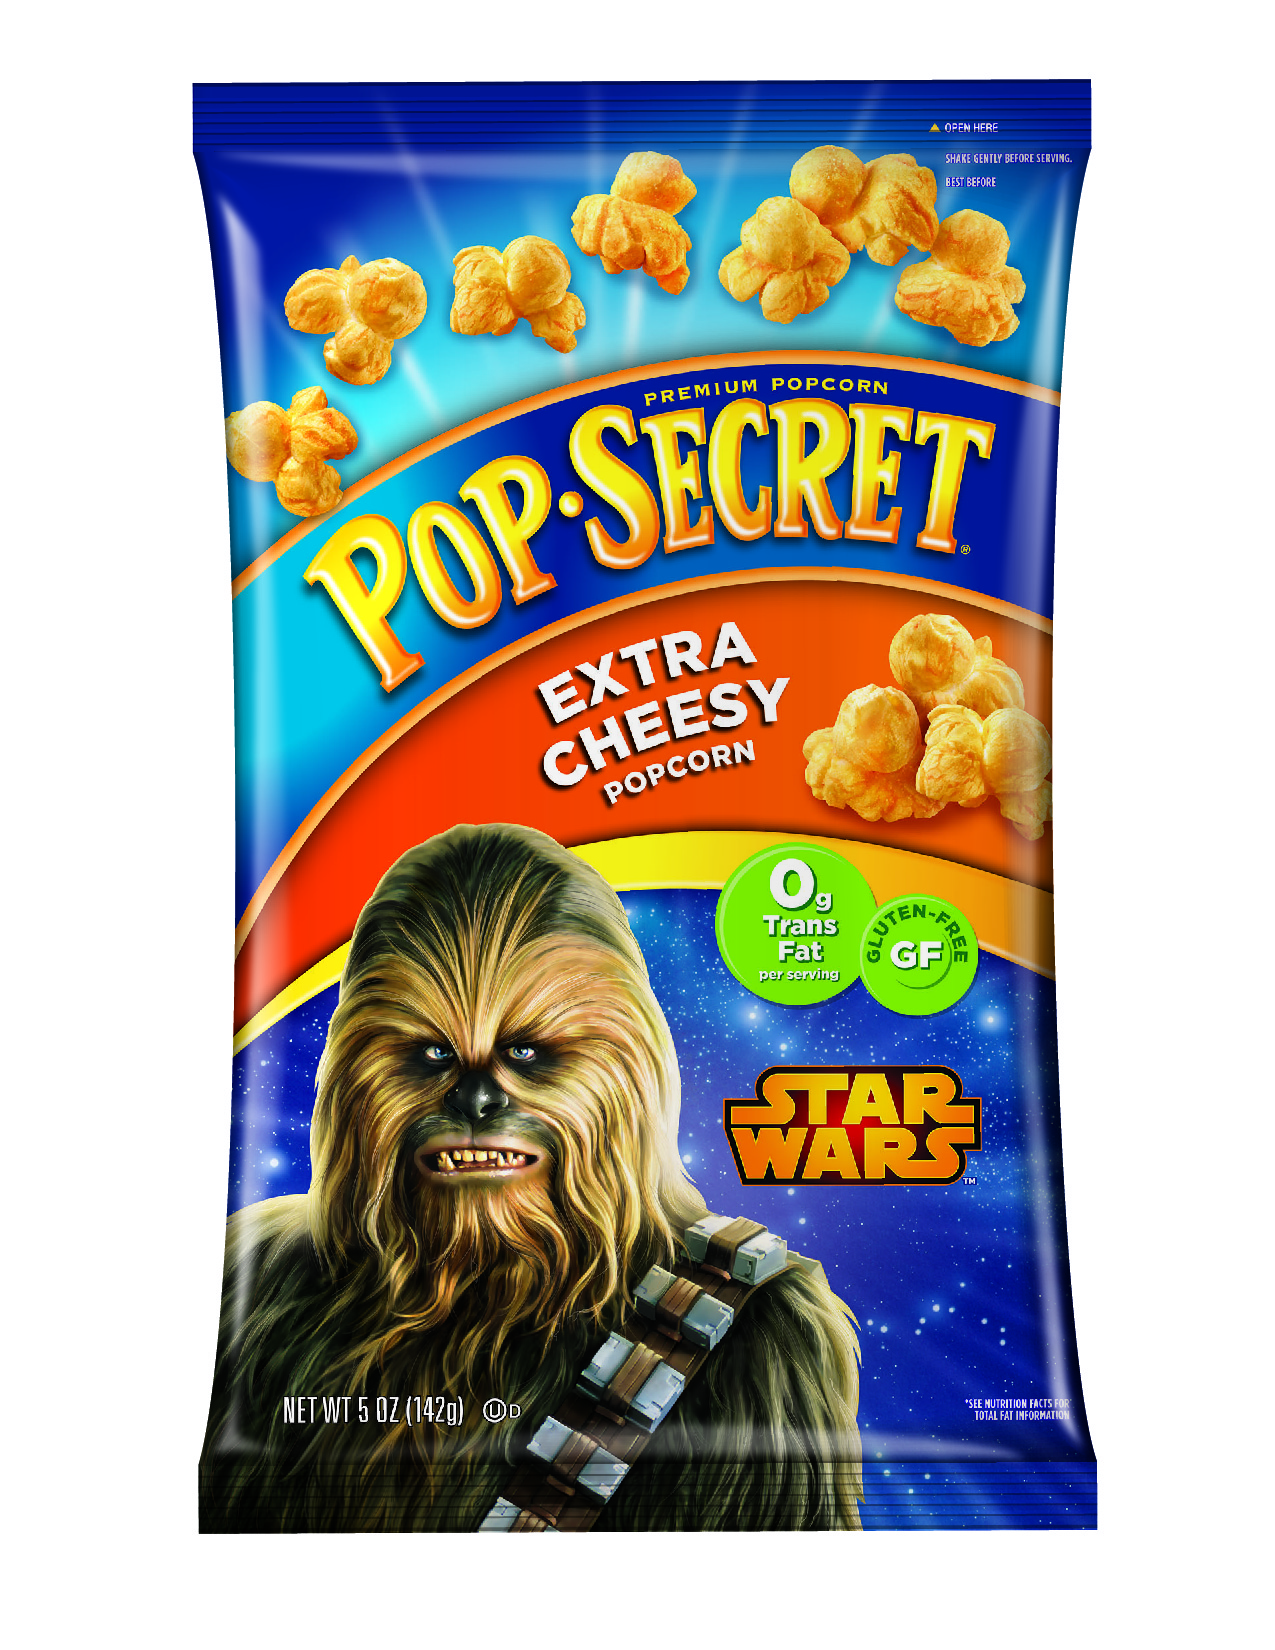 The force is strong in terms of the popcorn eating in my house #PopWars